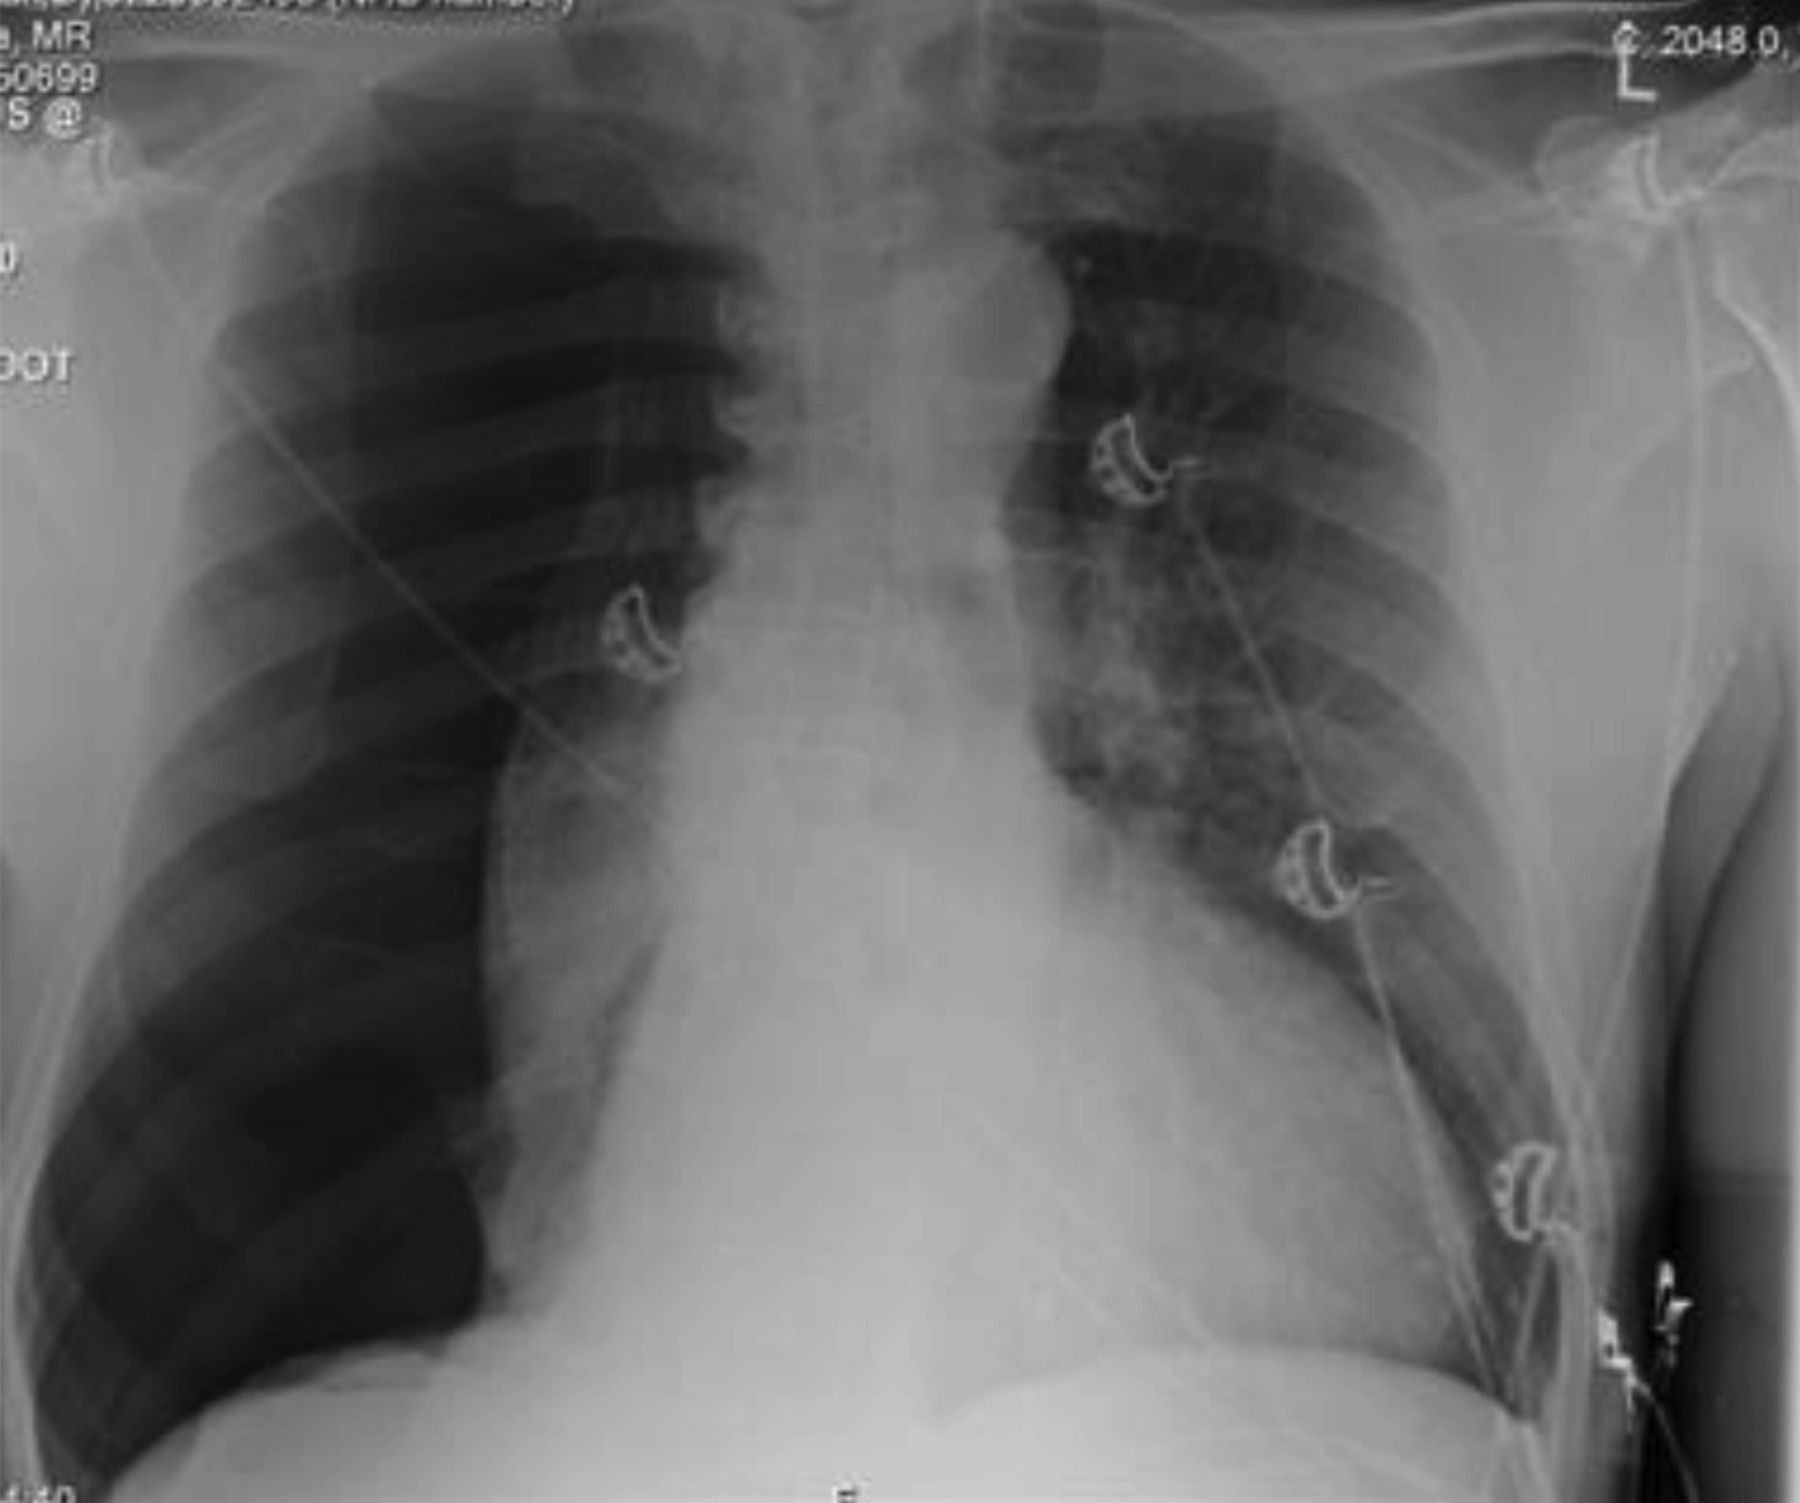 An interesting case of recurrent shortness of breath and pleuritic